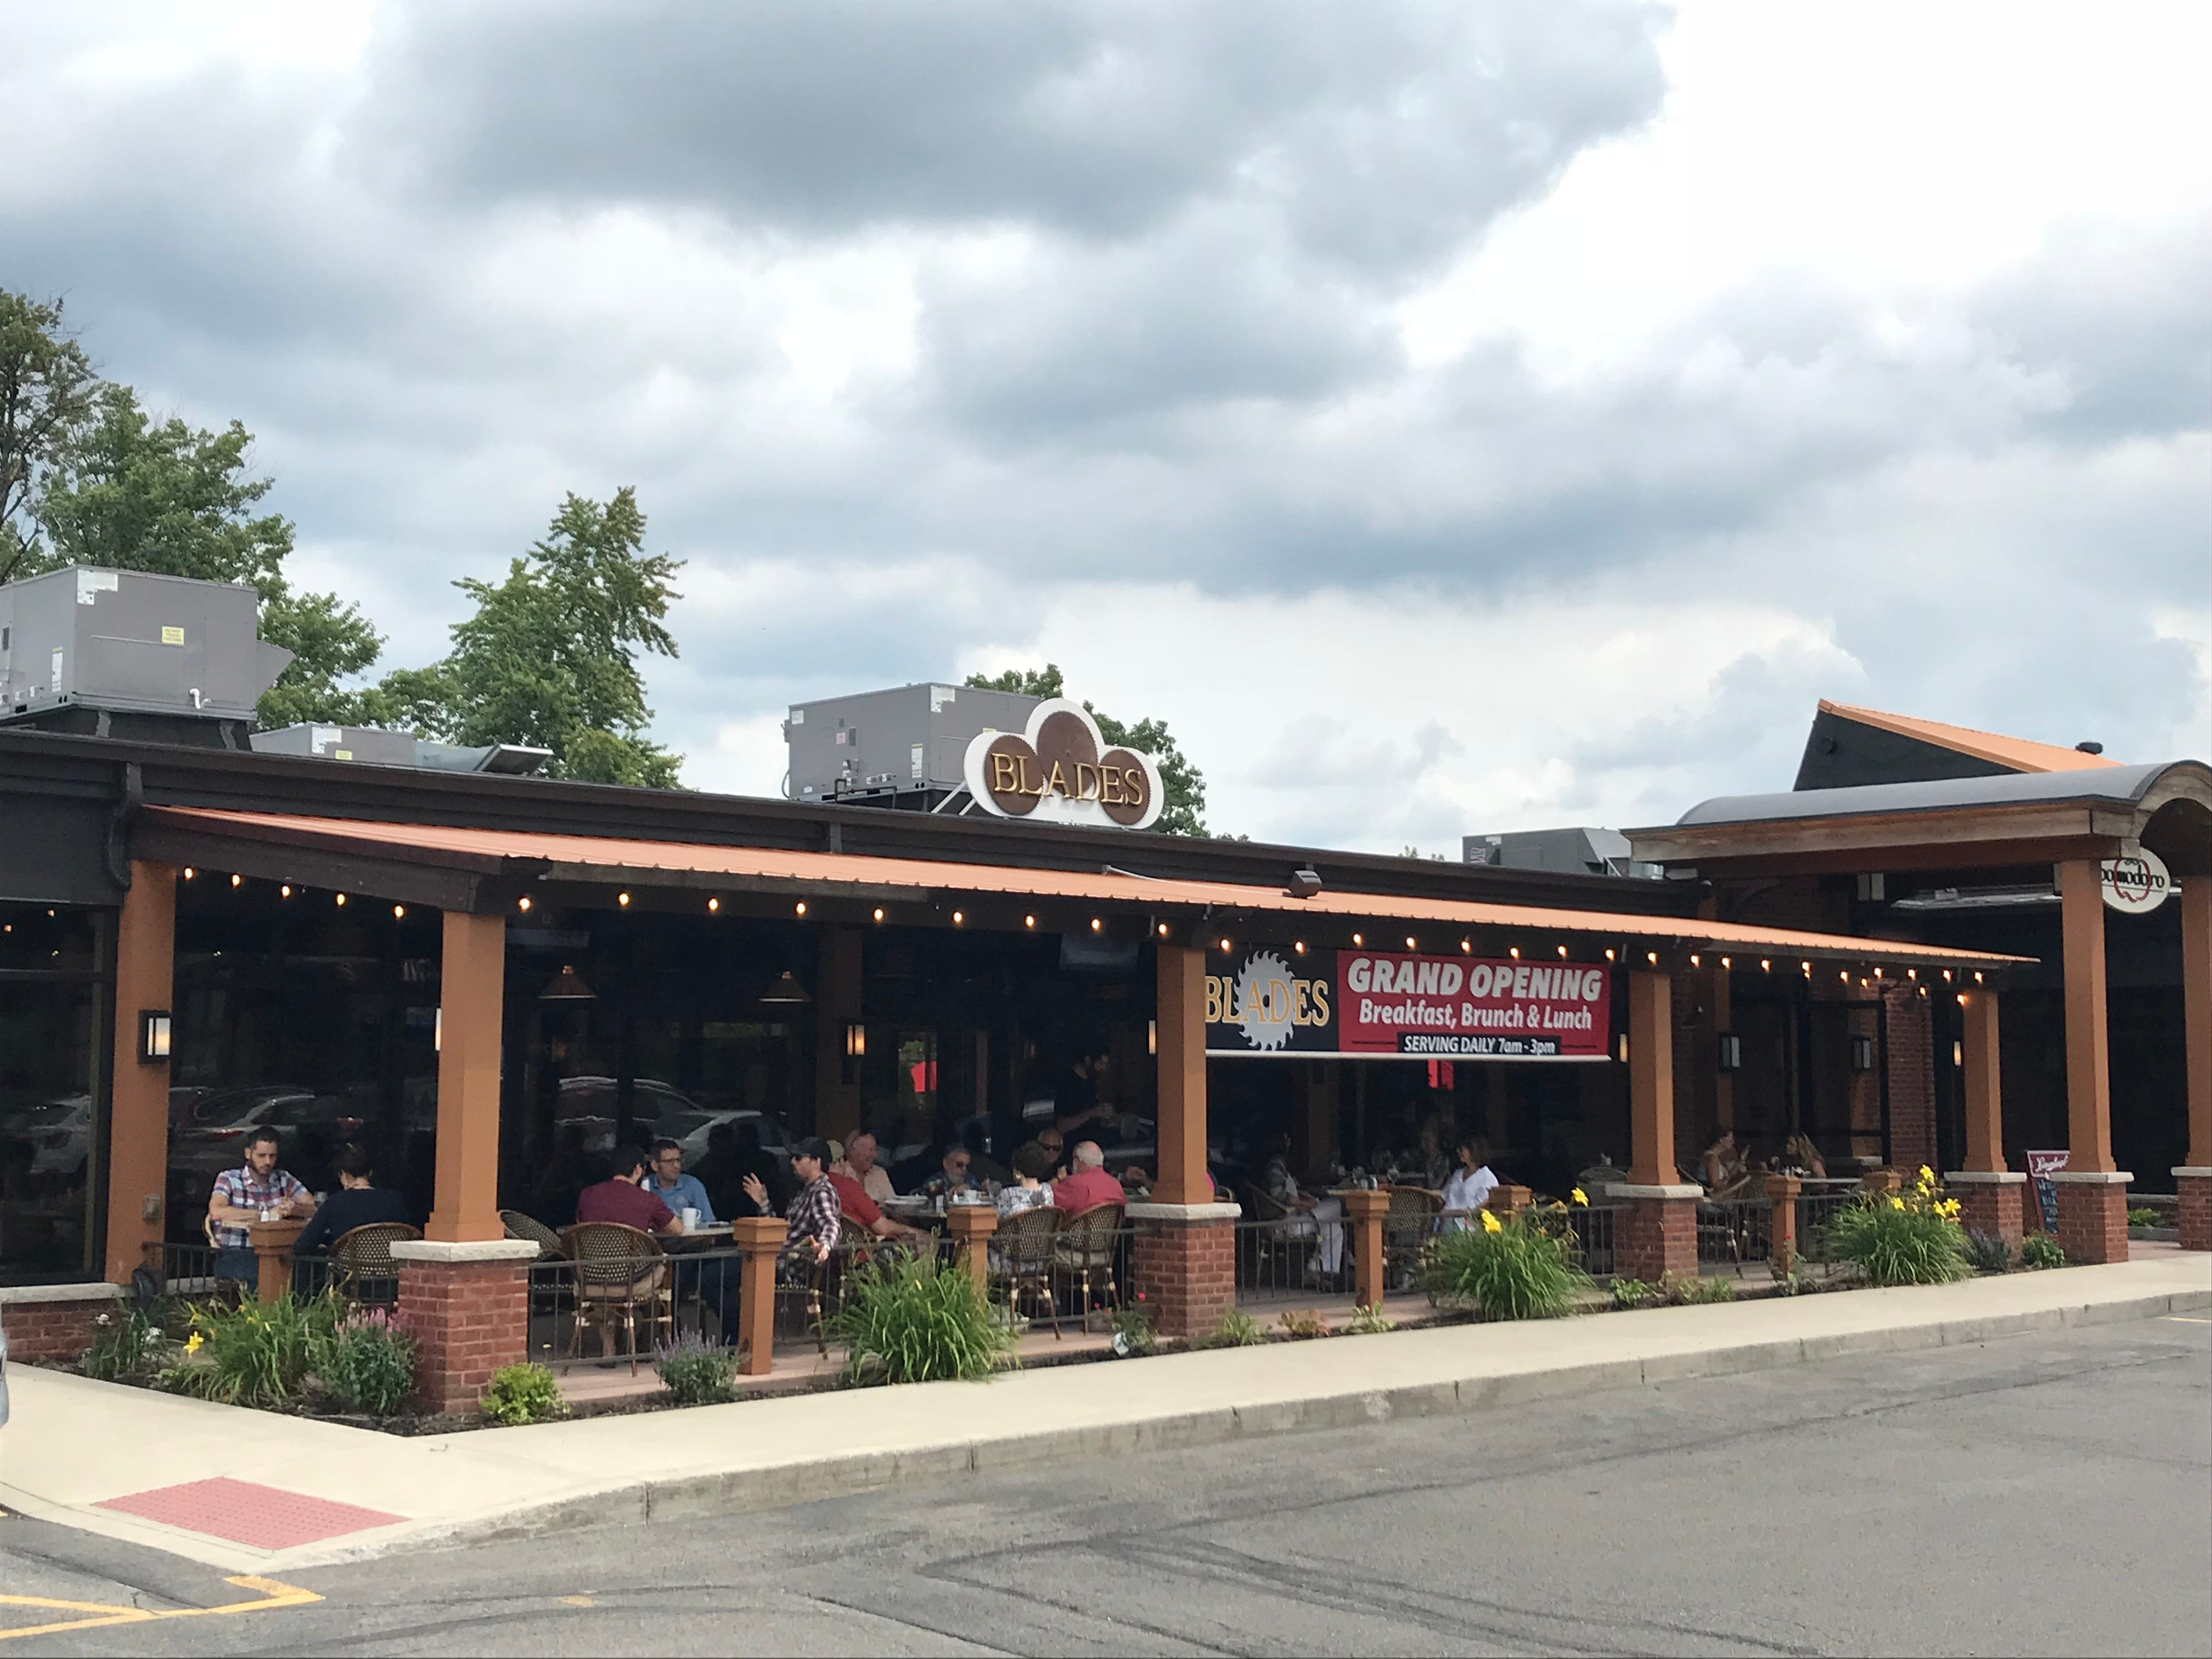 Blades, at 1290 East Ave., has a large, covered outdoor patio.